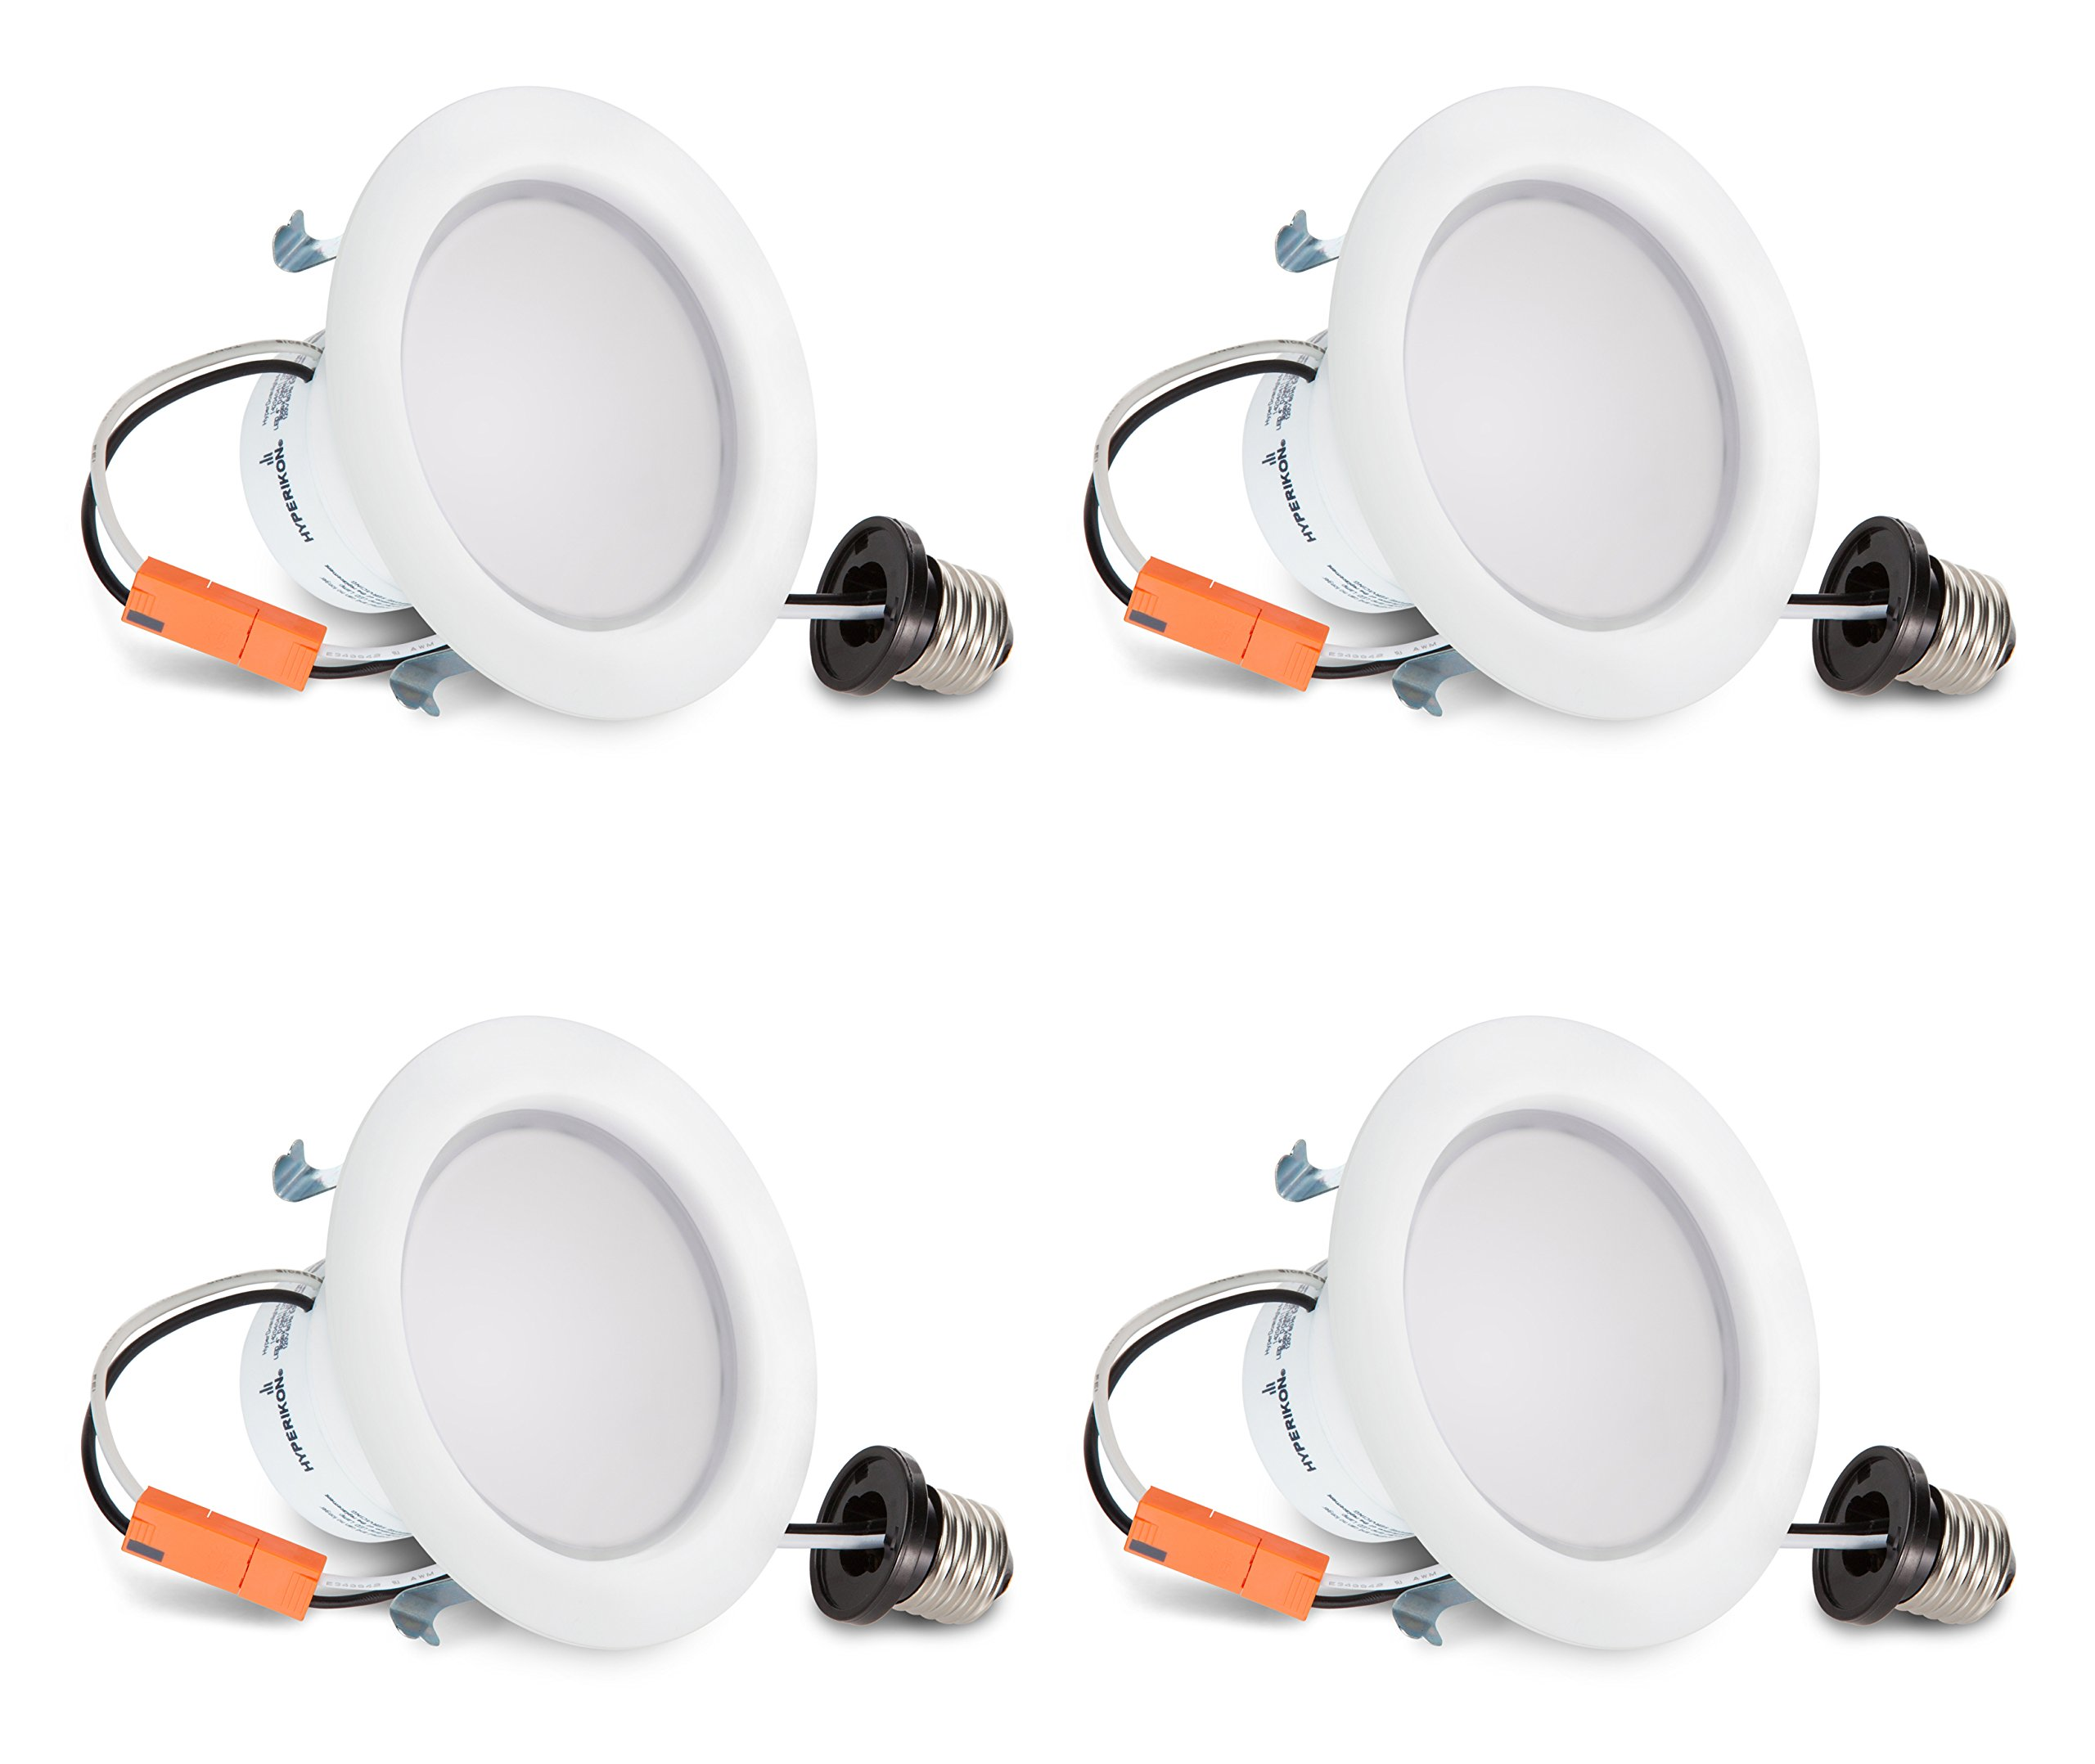 Hyperikon 4 Inch LED Recessed Lighting, 9W (65 Watt Replacement), Dimmable Downlight, 4000K Daylight, 4 Pack by Hyperikon